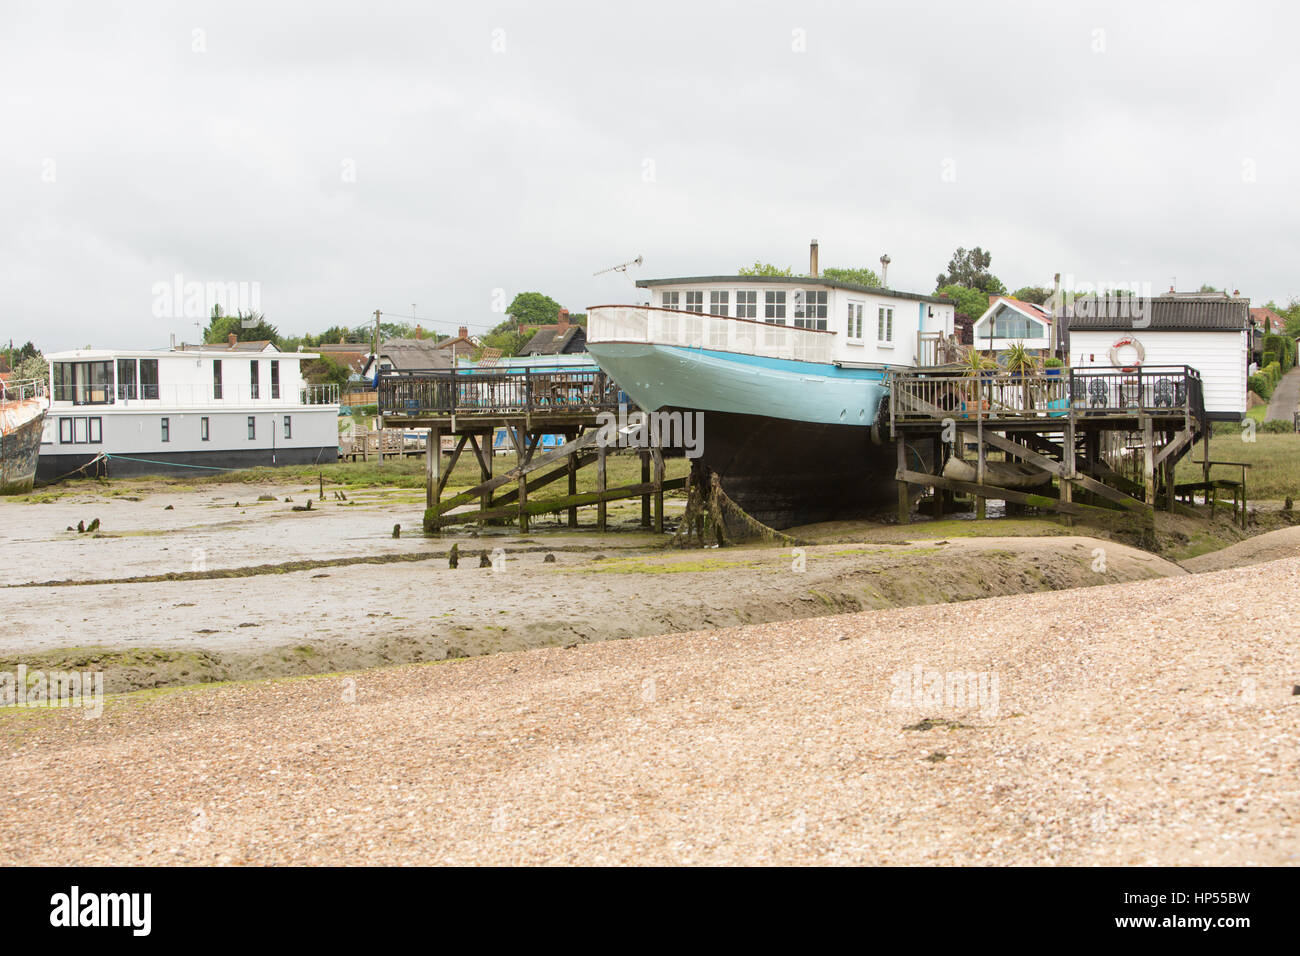 House boats at West Mersea, on estuary of the Blackwater and Colne rivers, Essex coast, UK. Unsharpened - Stock Image